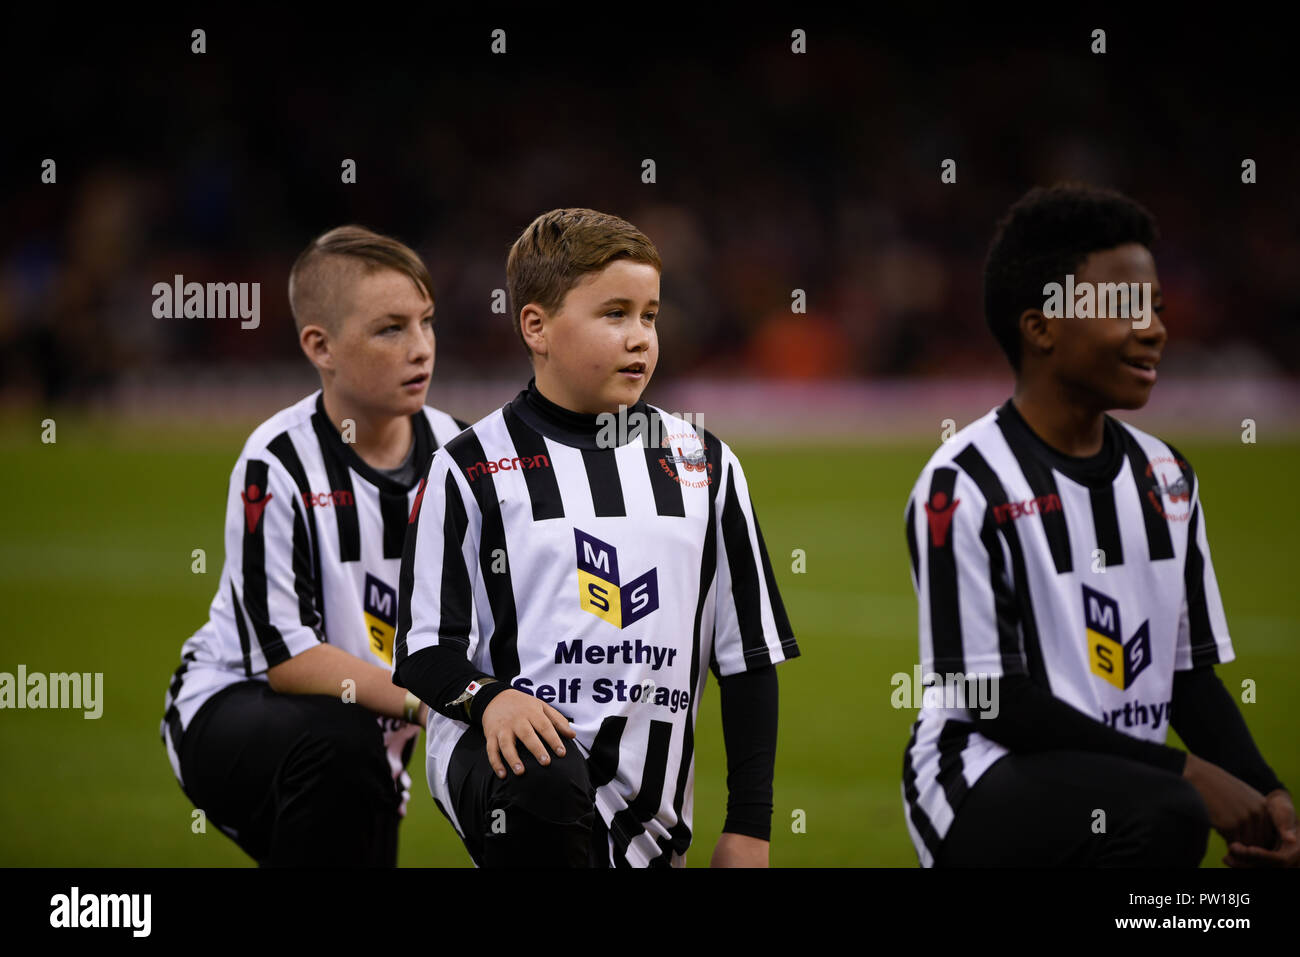 Cardiff, UK. 11th Oct 2018. Wales v Spain, International Football Friendly, National Stadium of Wales, 11/10/18: Mascots Credit: Andrew Dowling/Influential Photography/Alamy Live News Stock Photo